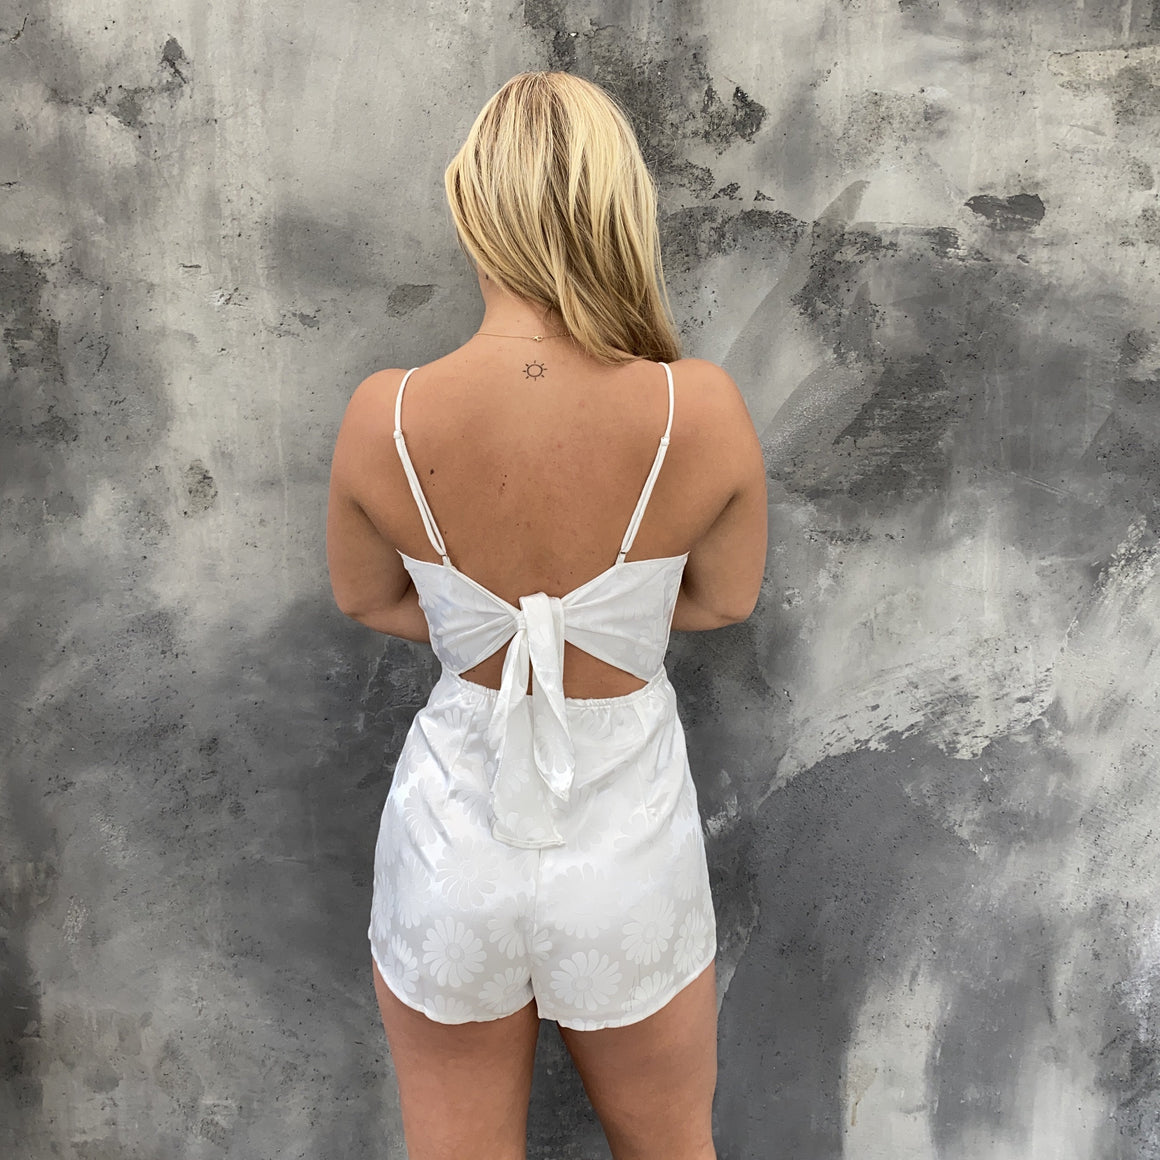 Flower Child White Floral Print Romper - Dainty Hooligan